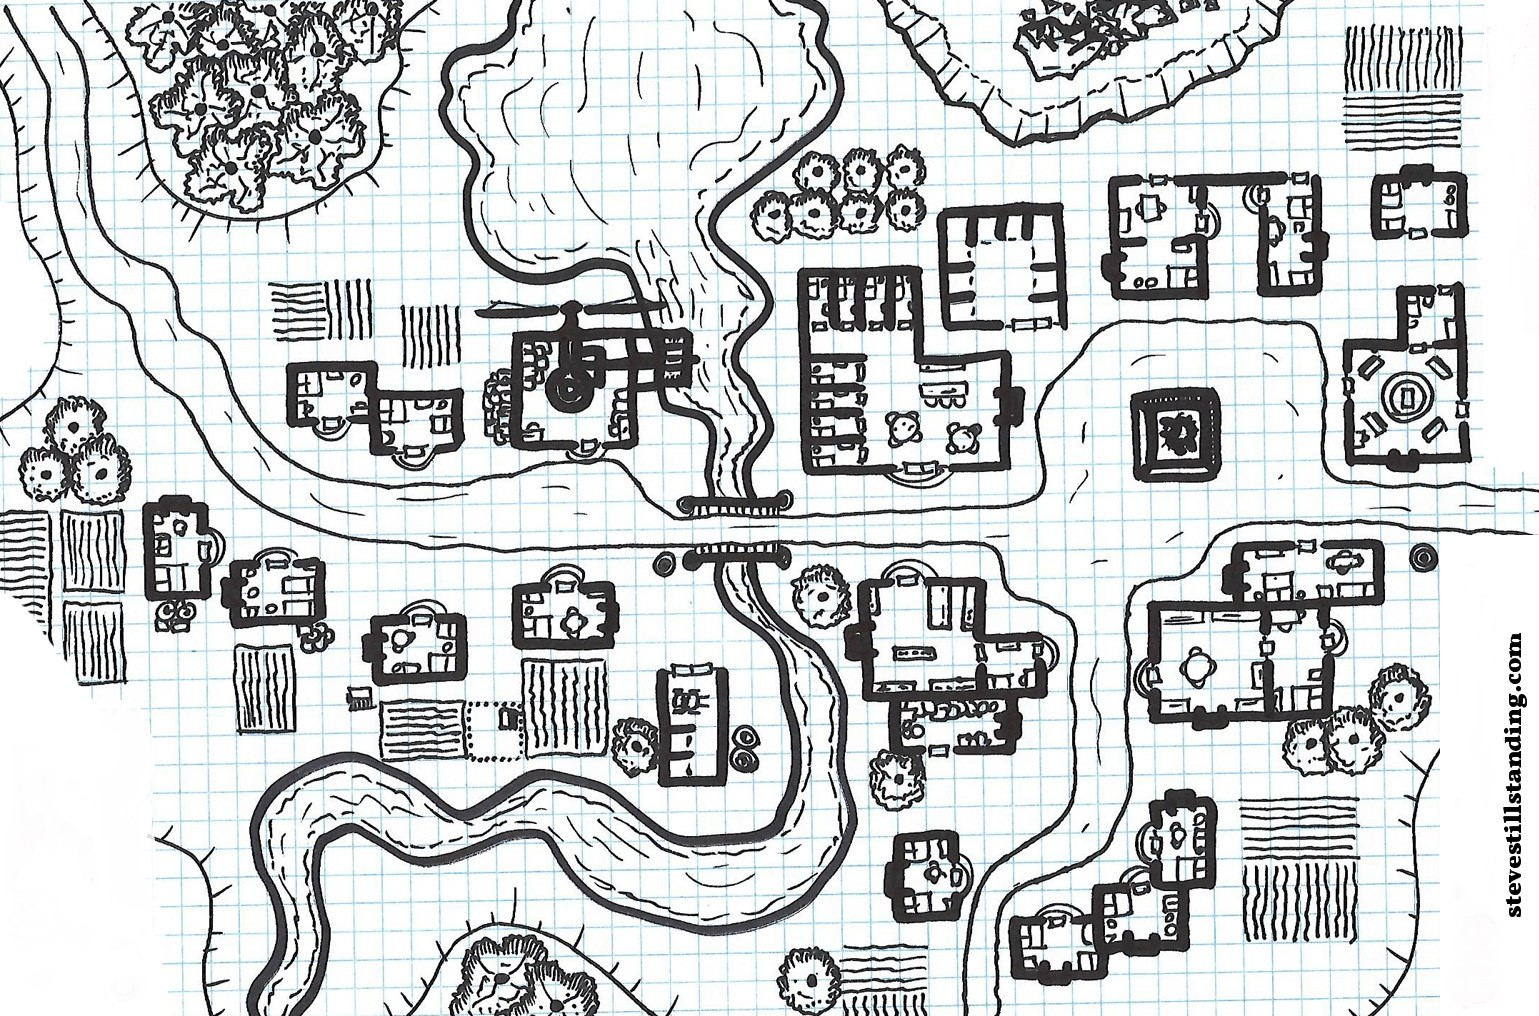 line drawing of fantasy town: https://stevestillstanding.com/2017/09/30/the-laidback-dm-12-free-village-map/